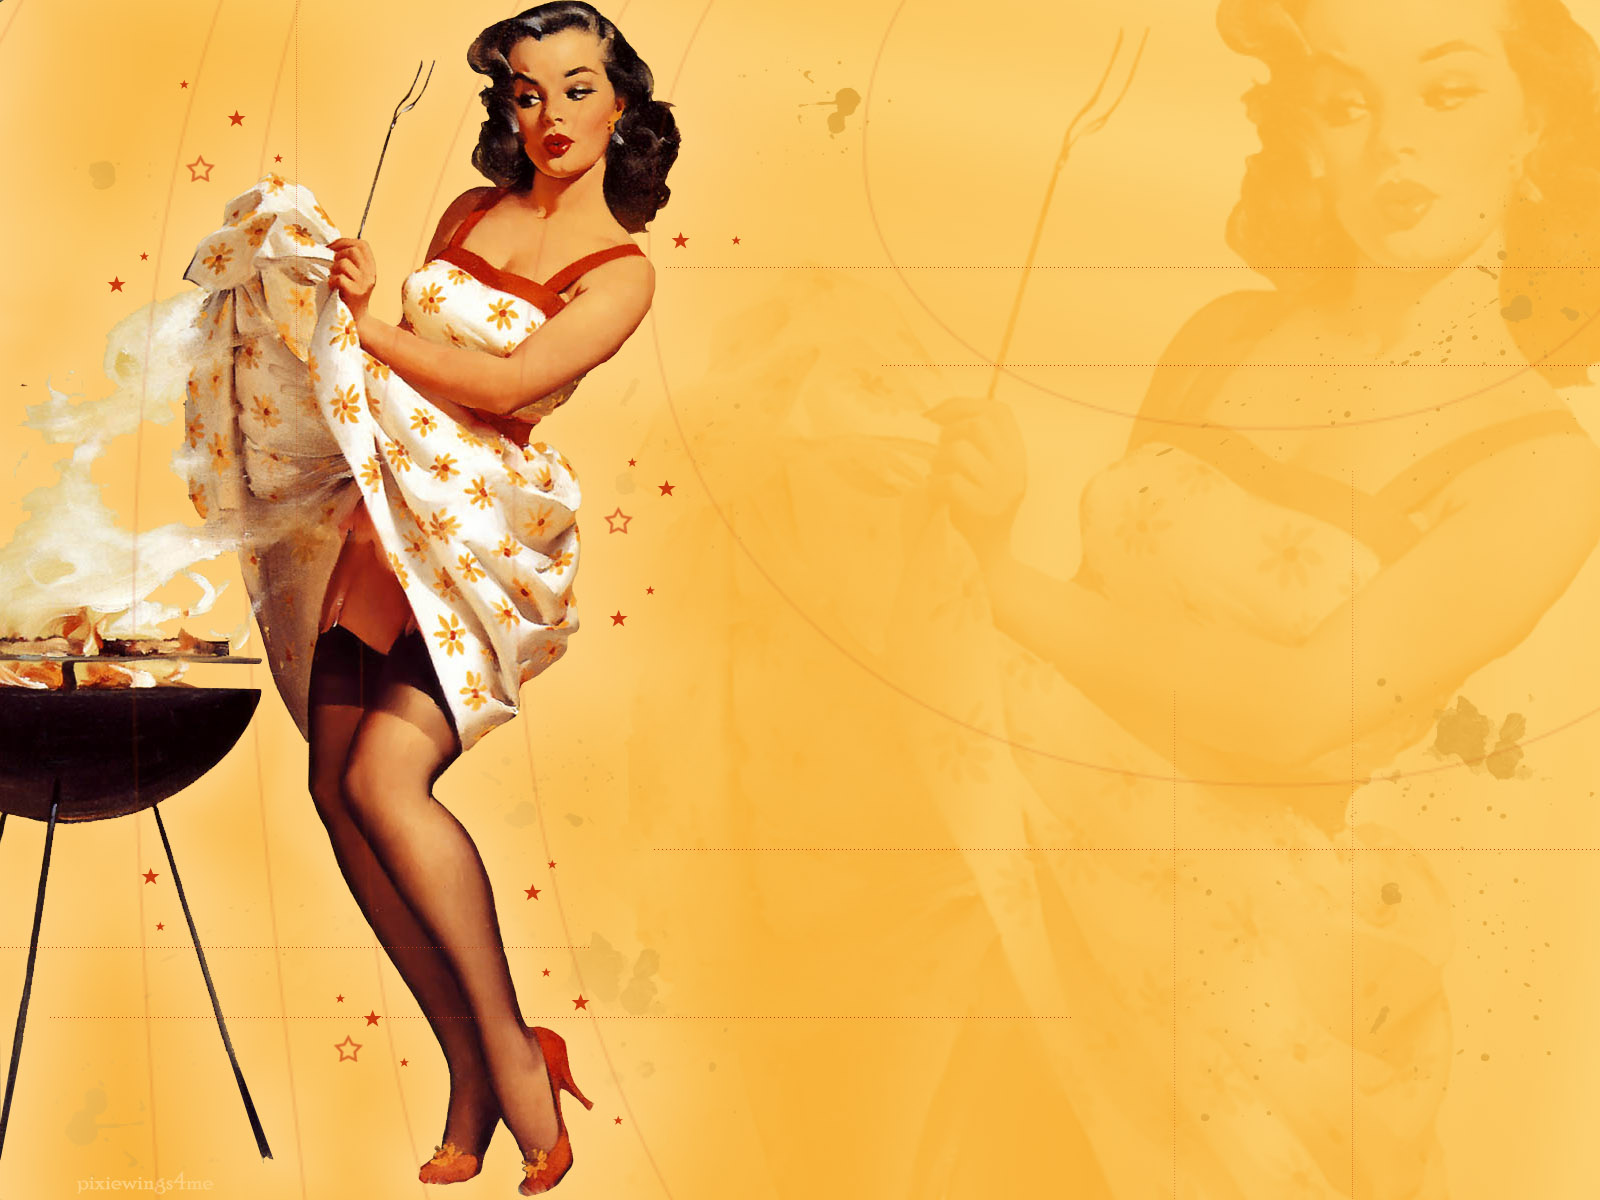 http://2.bp.blogspot.com/-FsV5AVeJGAM/T1ElS0o4h2I/AAAAAAAAEKg/RQs9U4BA6vE/s1600/Free+Wallpaper+Vintage+Pin+Up+Girls.jpg